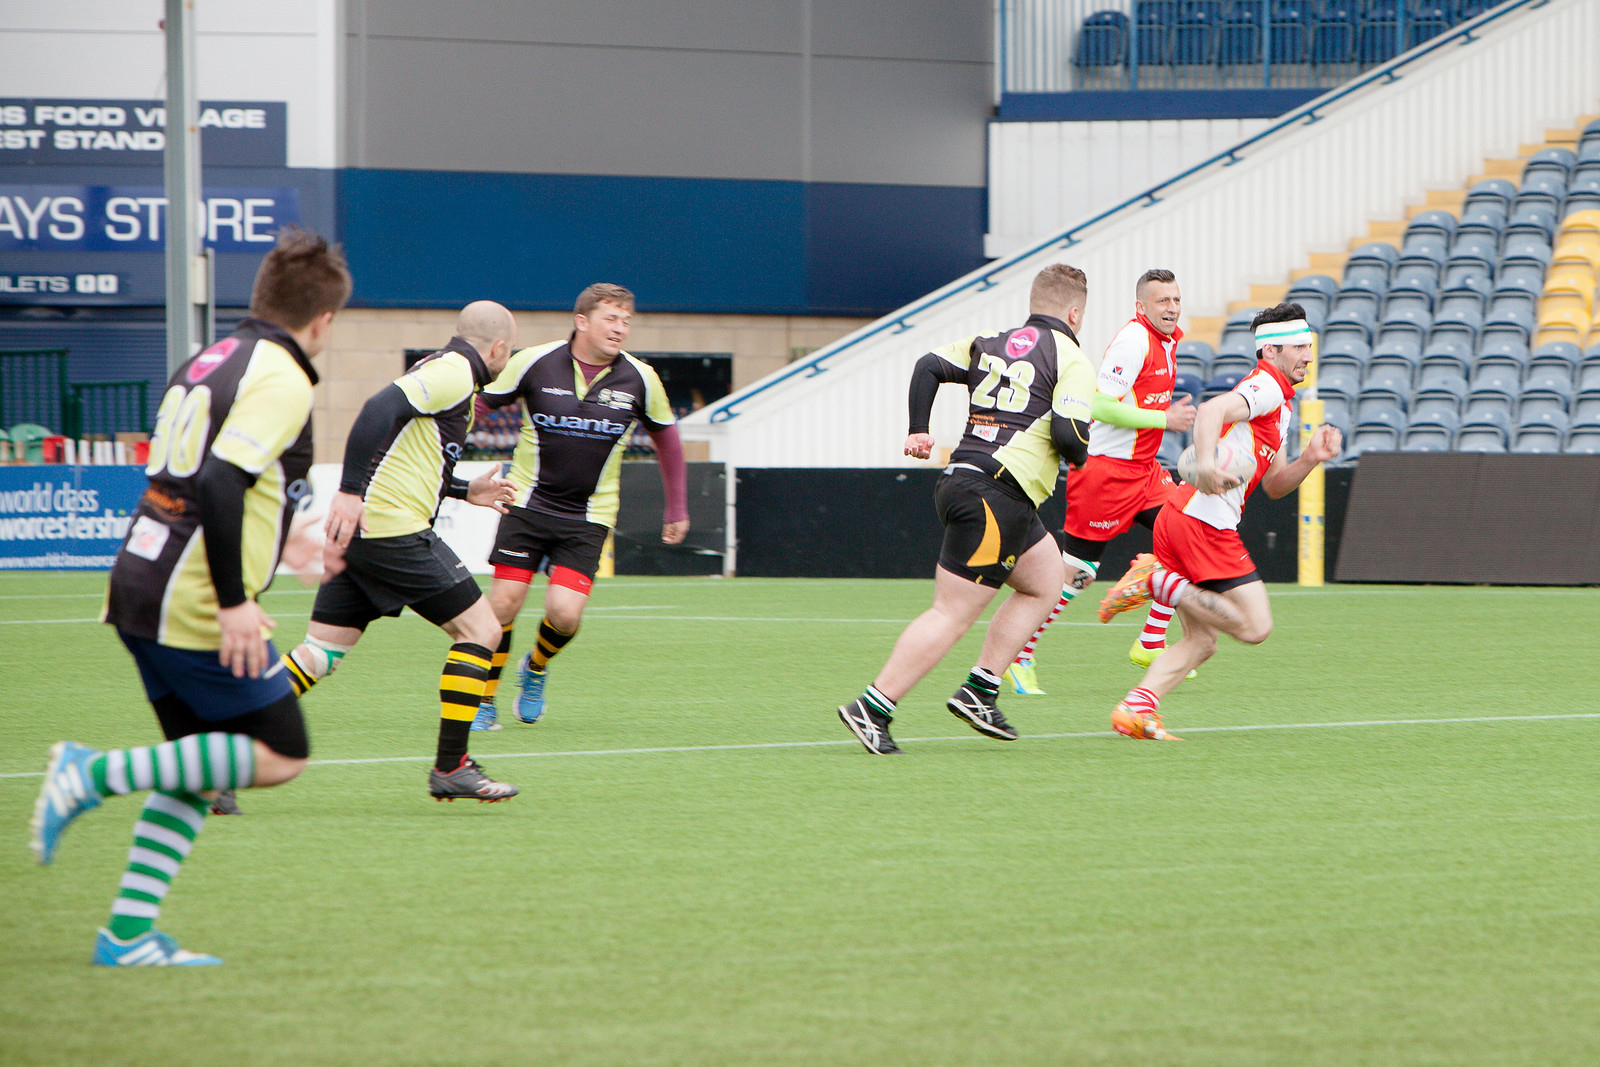 Bridgnorth firefighter Luke Veal (in green sleeves) during the 30 hour world beating rugby challenge for charity